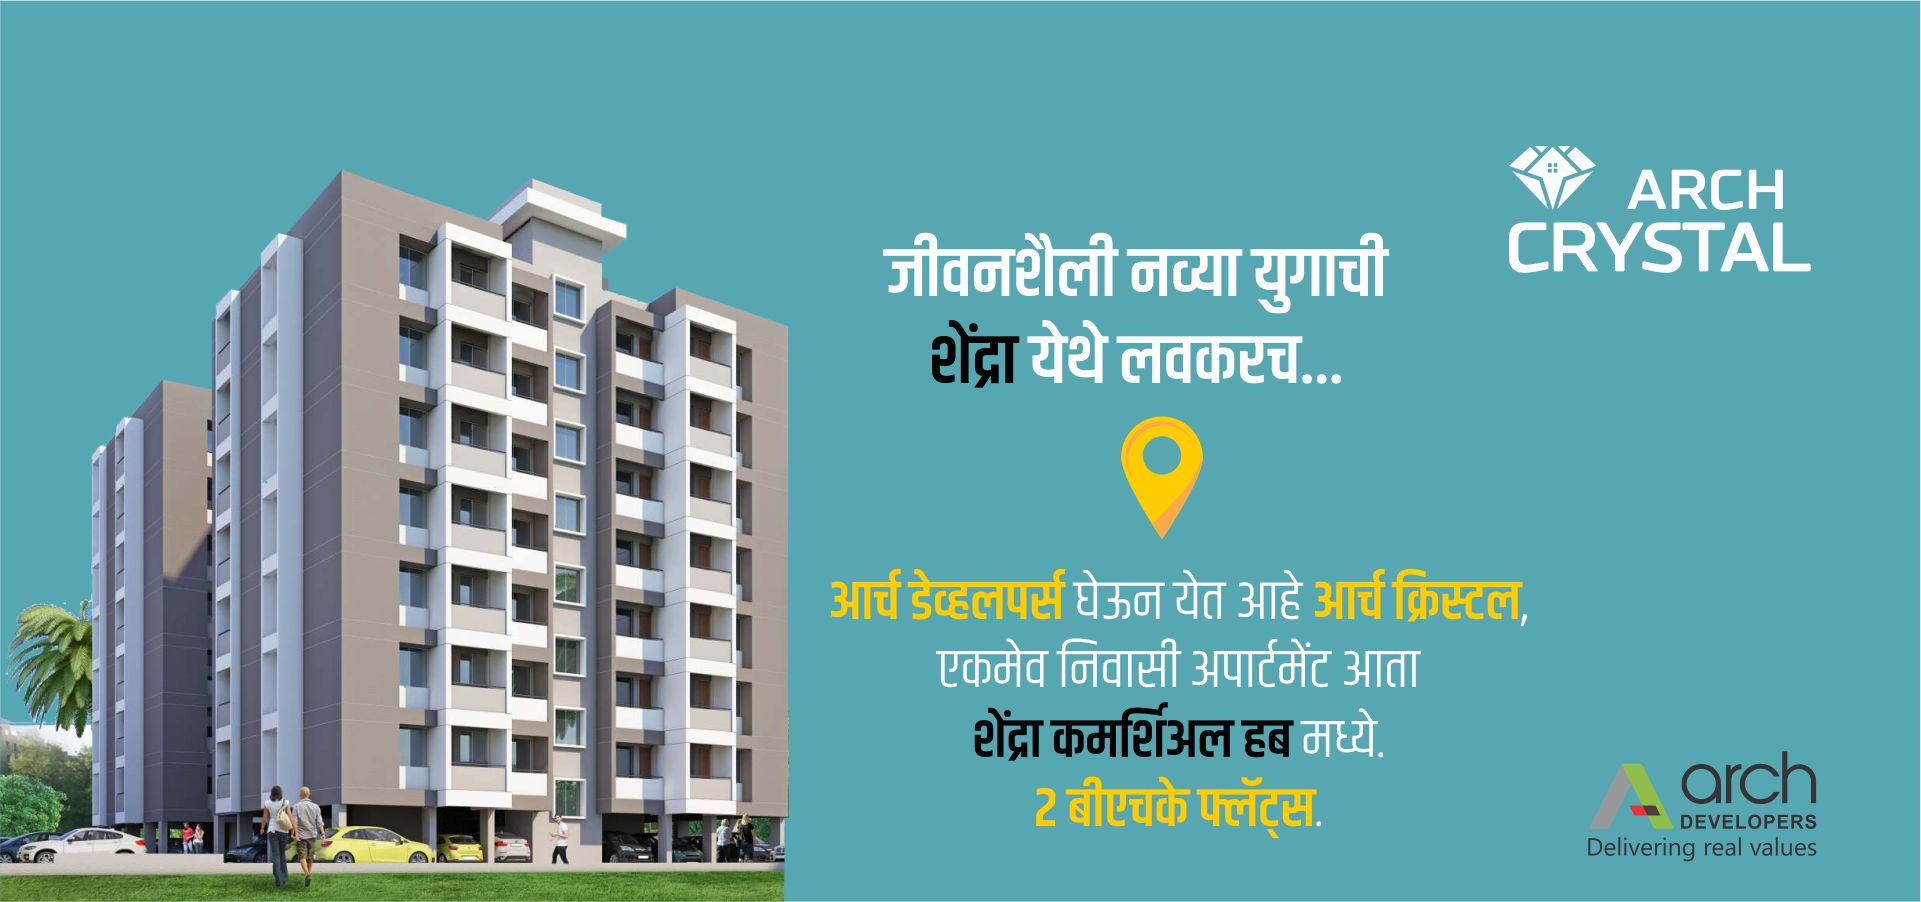 arch-crystal-arch-developers-top-real-company-in-aurangabad